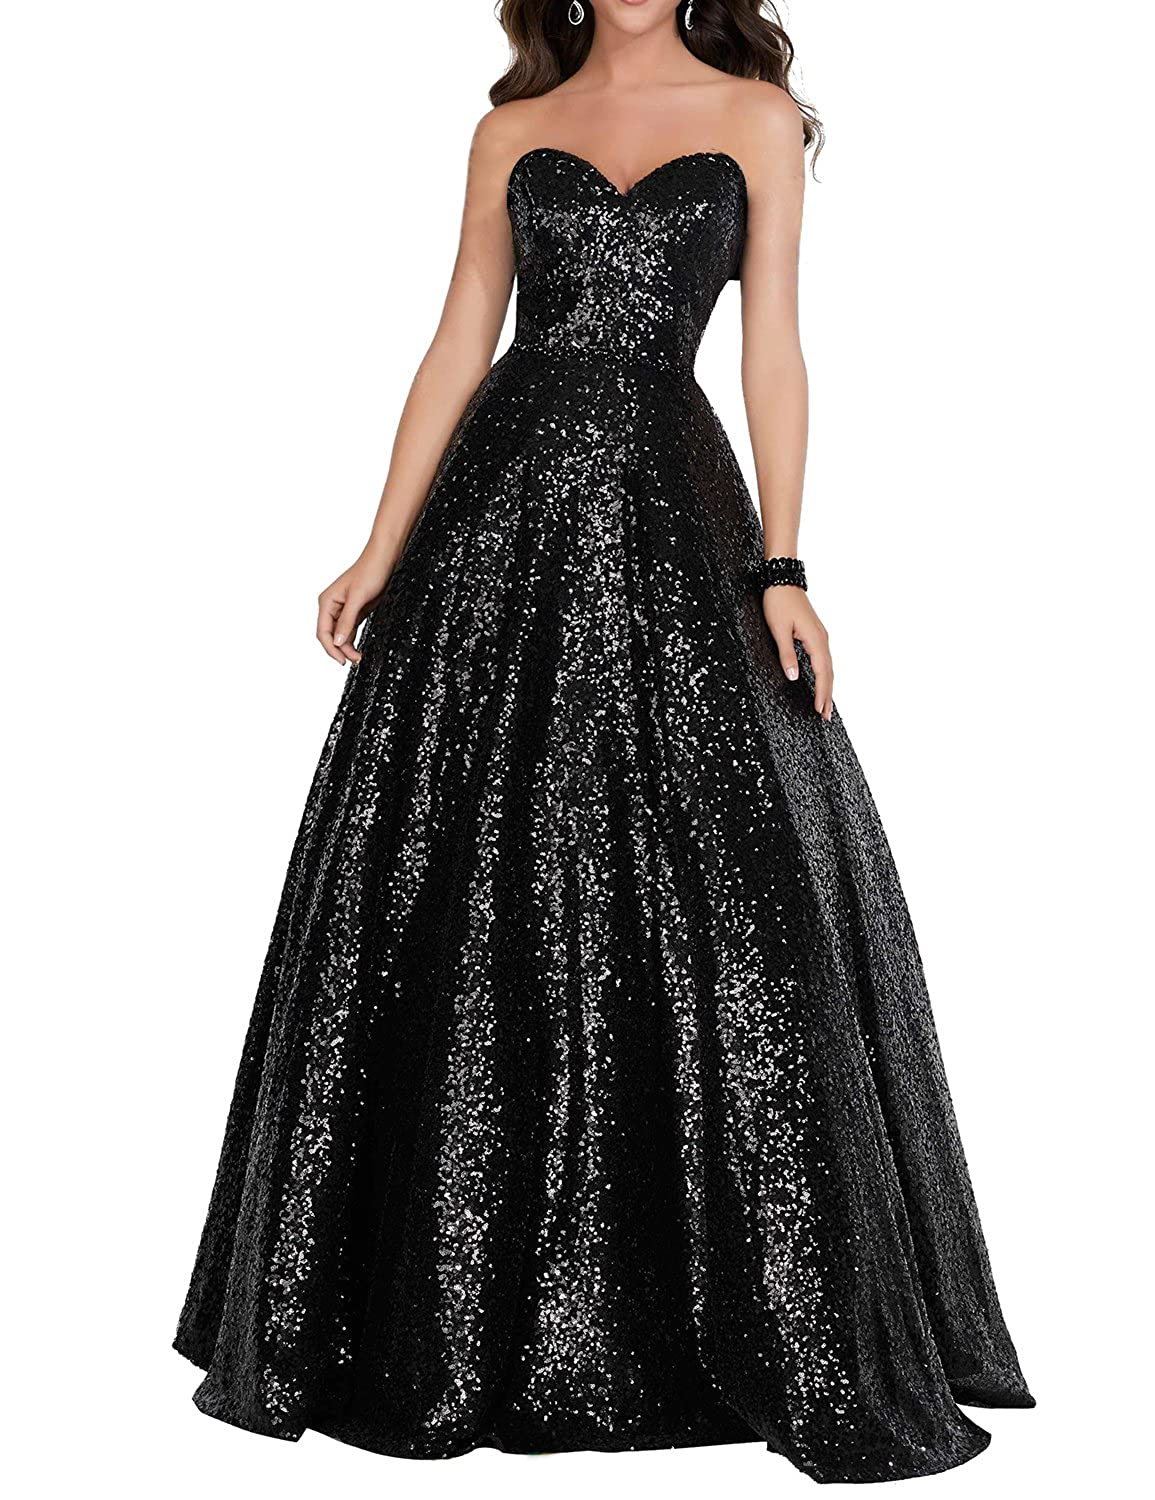 16c4a46143b0f 2018 Newly Listed Sequined Off Shoulder Empire Waist Party Dress For Women  A Line Fashion V Back.Sexy Elegant Prom Dresses For Ladies.Long Bodycon  Fashioned ...